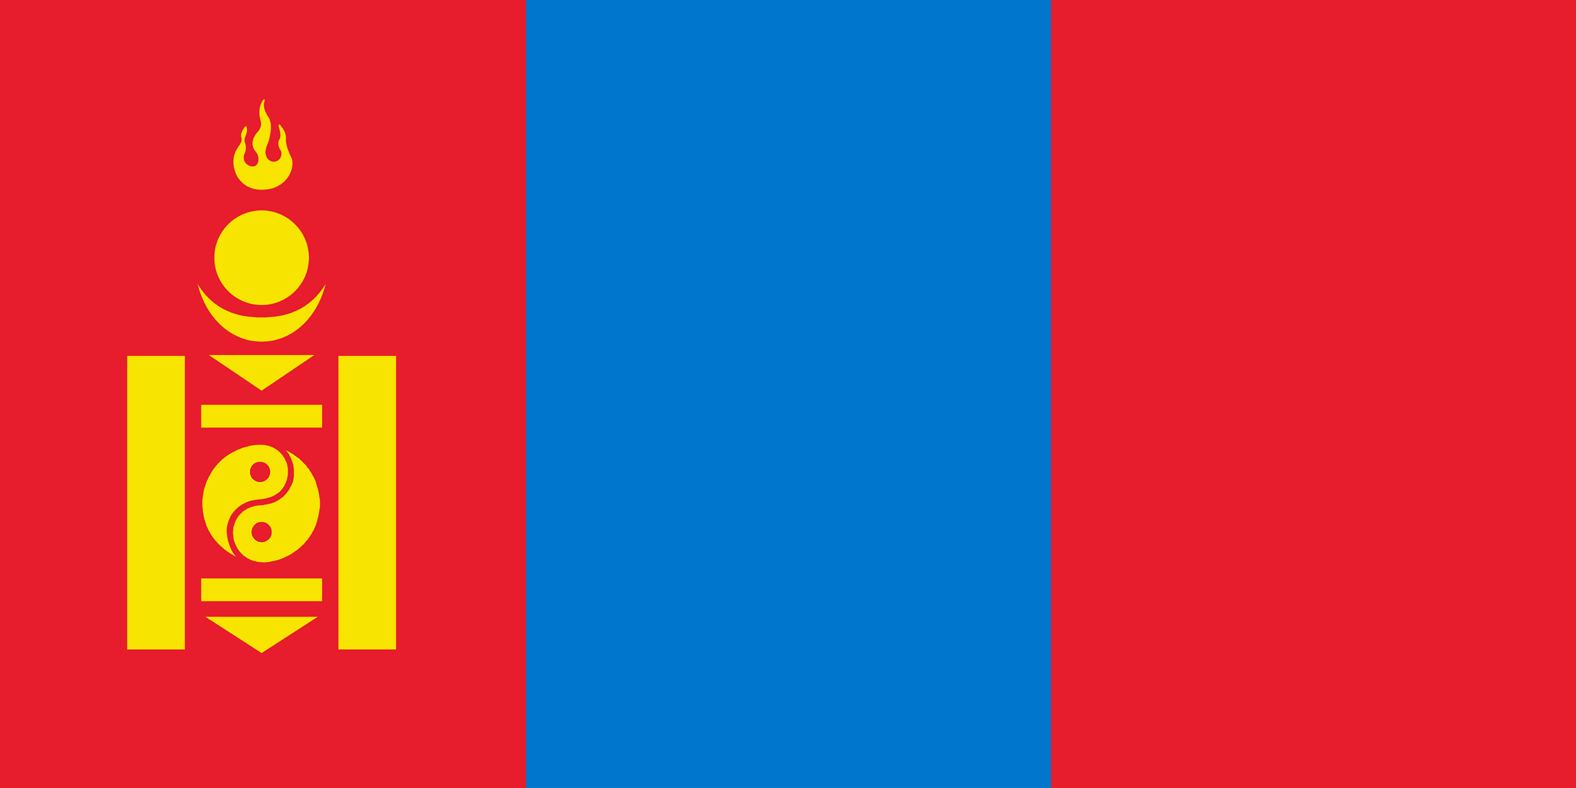 Fichier:Flag of Mongolia.png